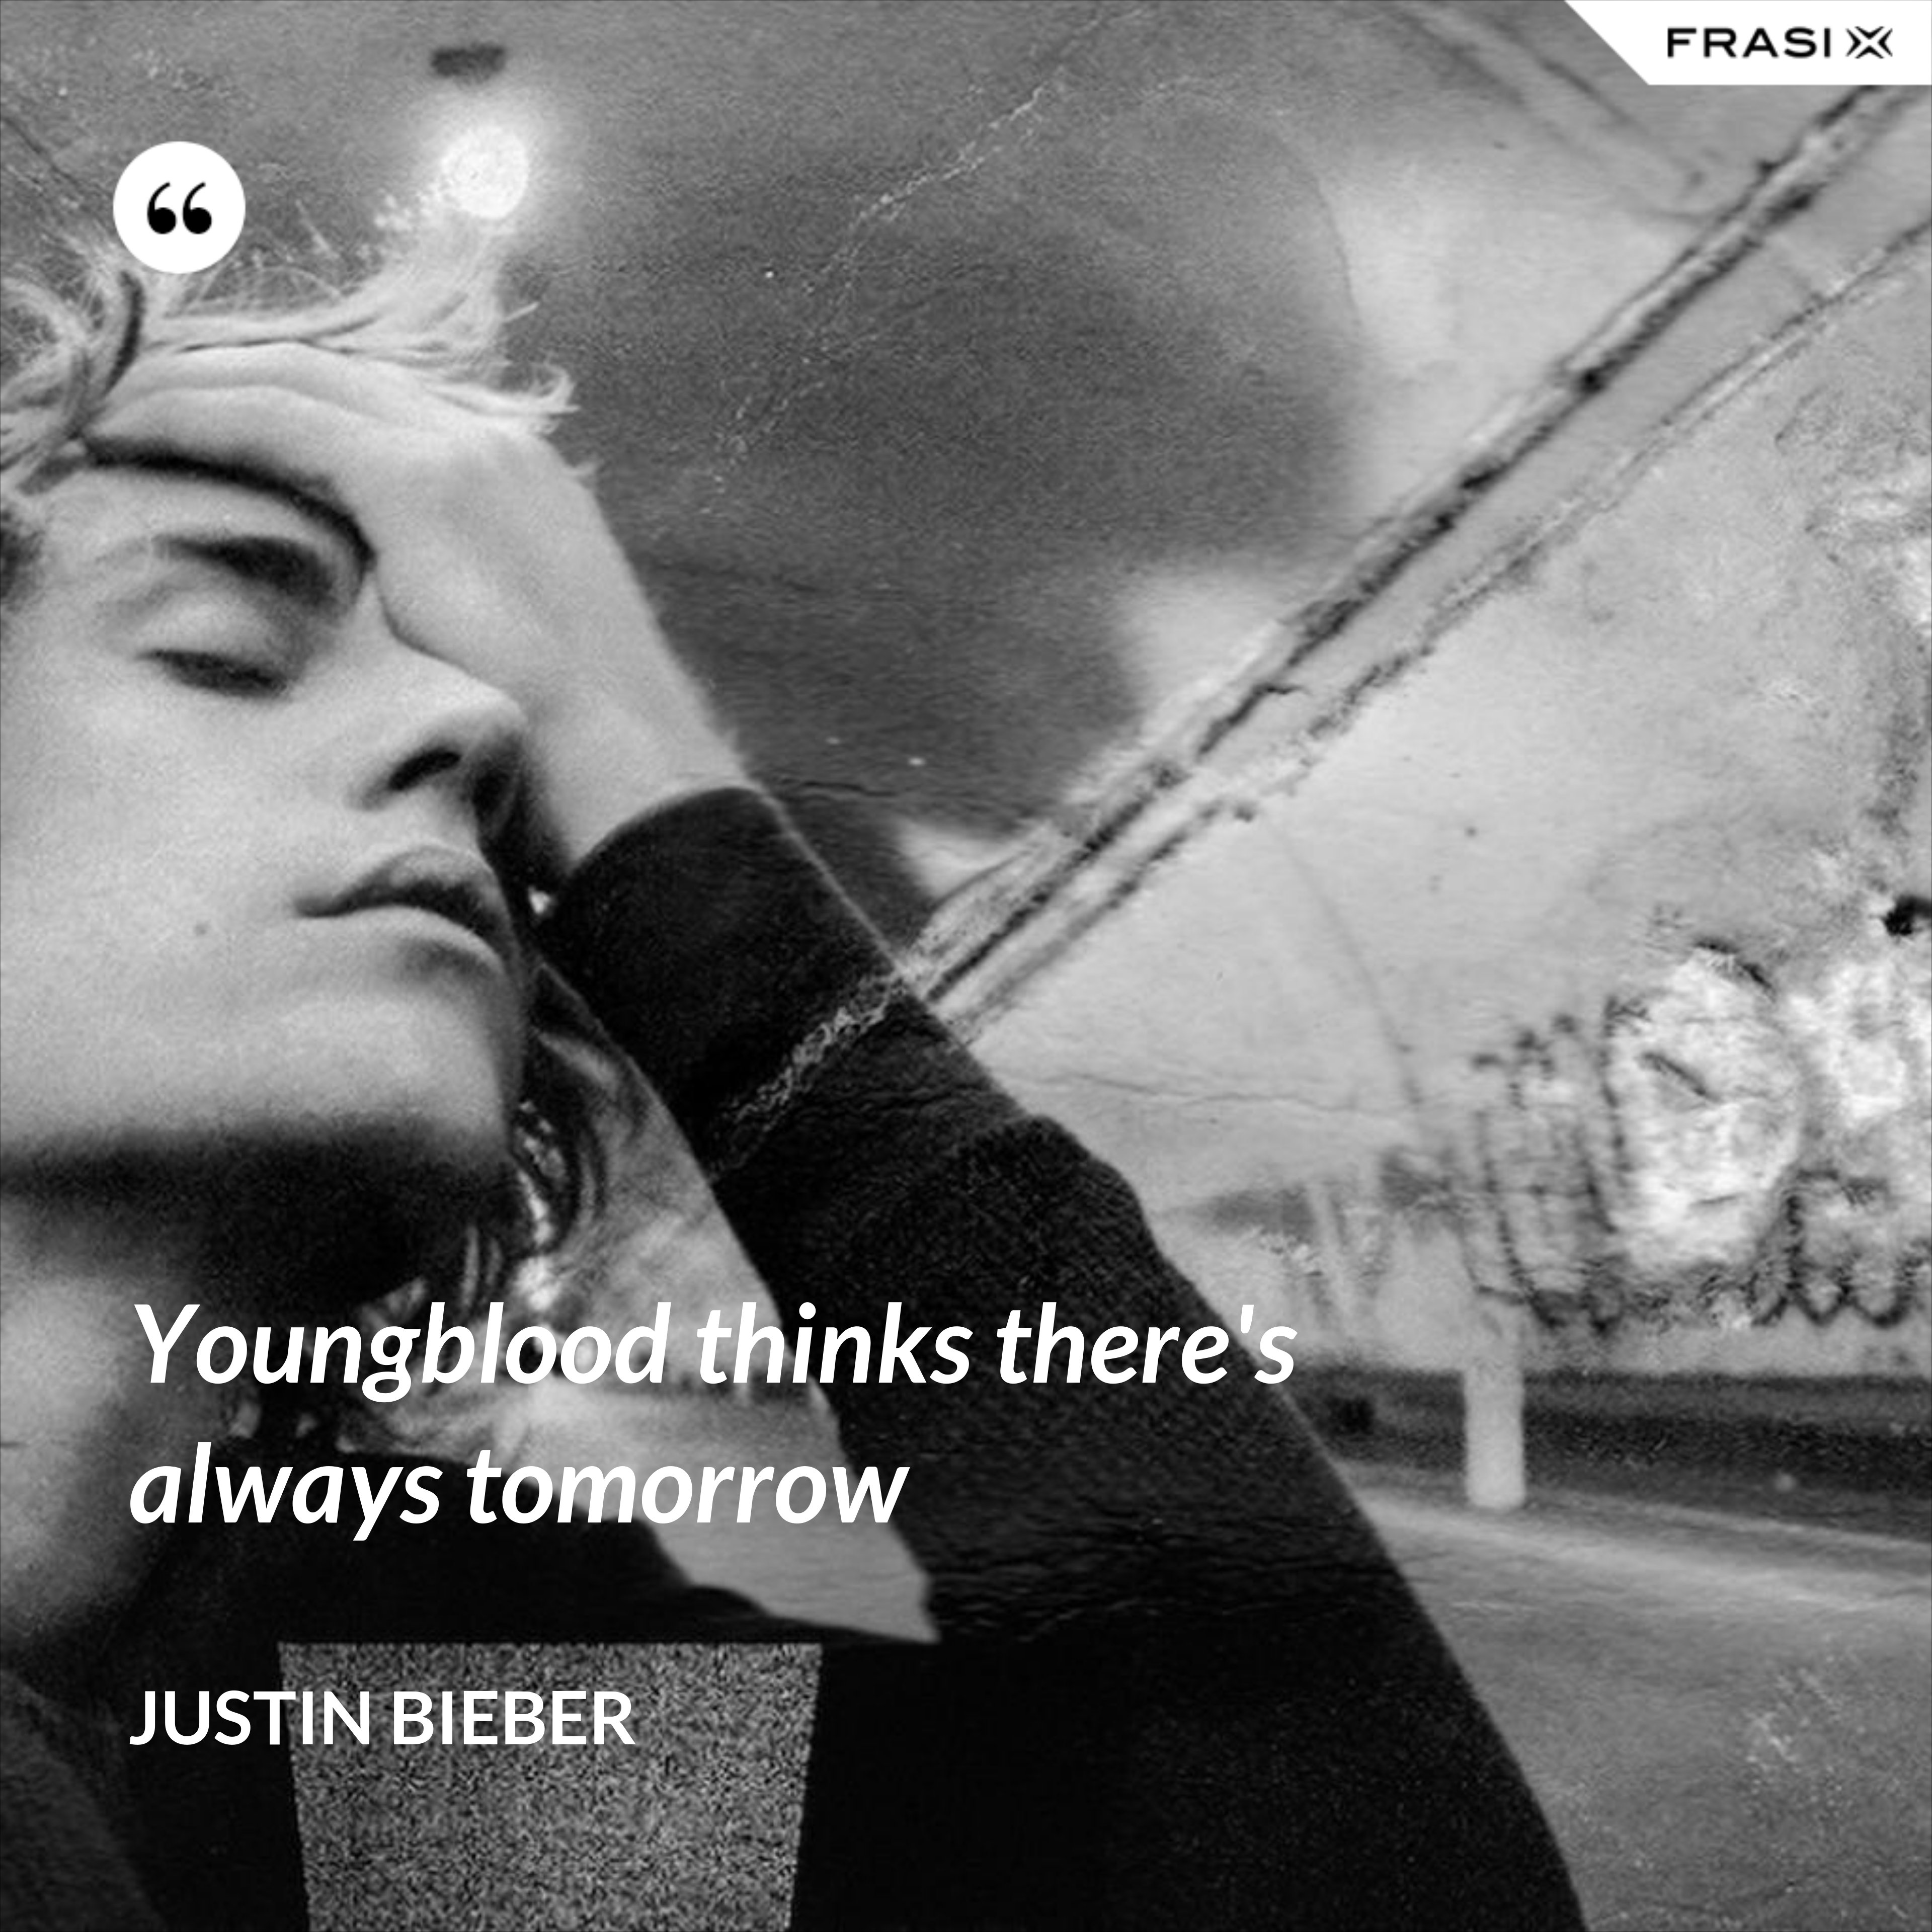 Youngblood thinks there's always tomorrow - Justin Bieber